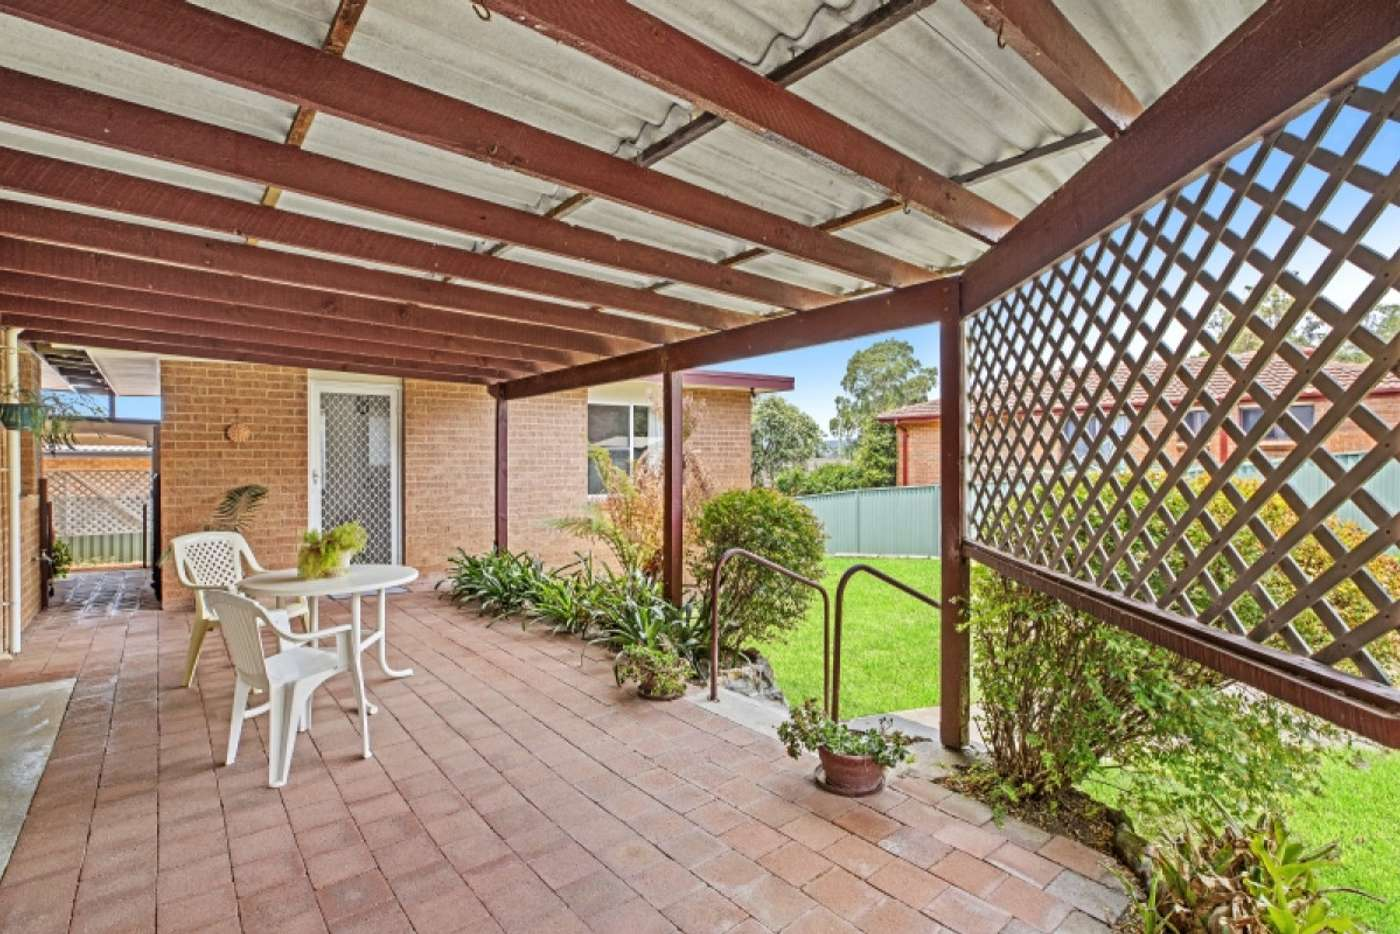 Sixth view of Homely house listing, 19 Strand Avenue, Narara NSW 2250